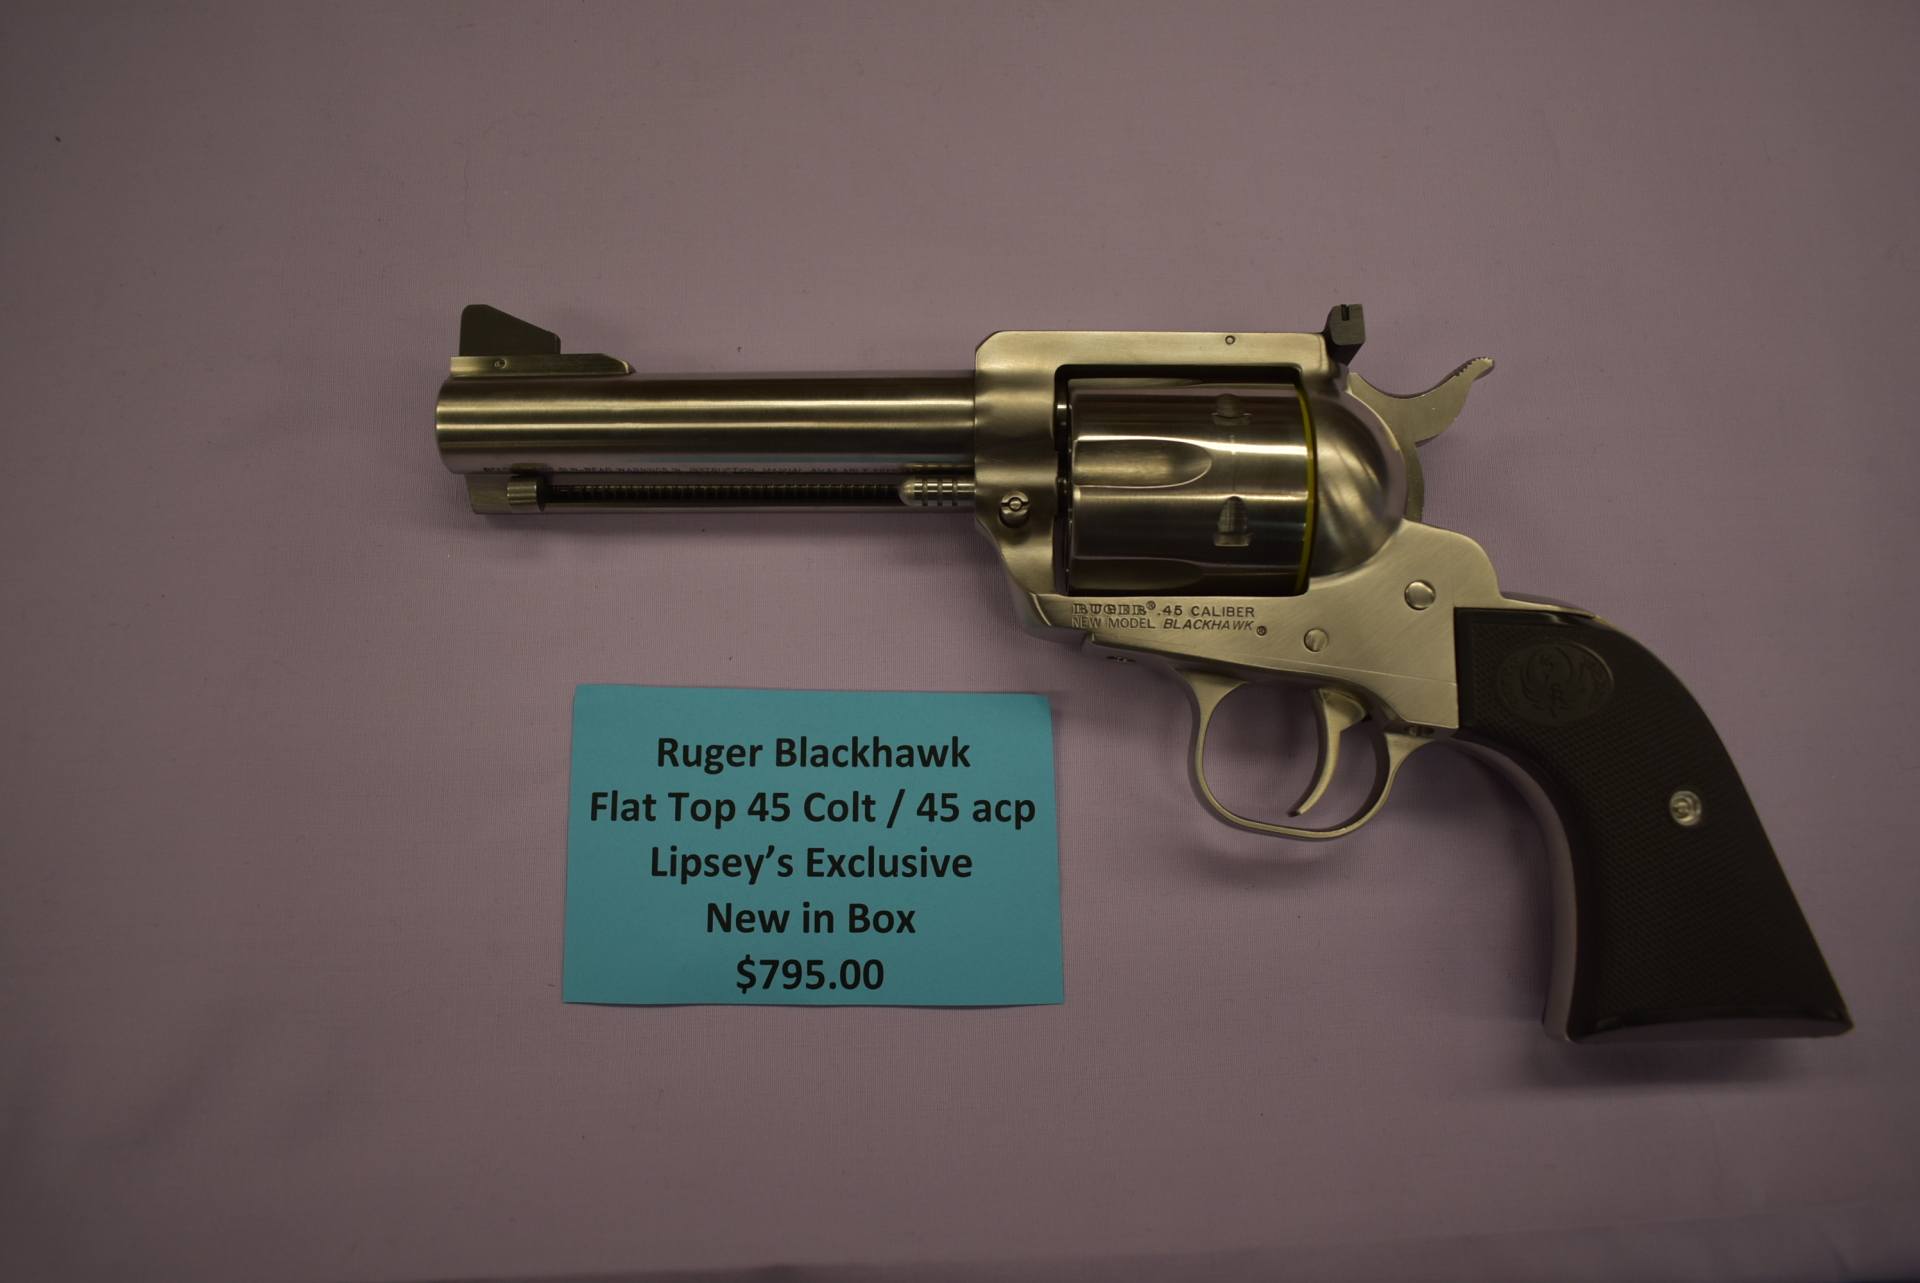 Brand NEW Ruger Blackhawk Flat Top Lipsey's Edition